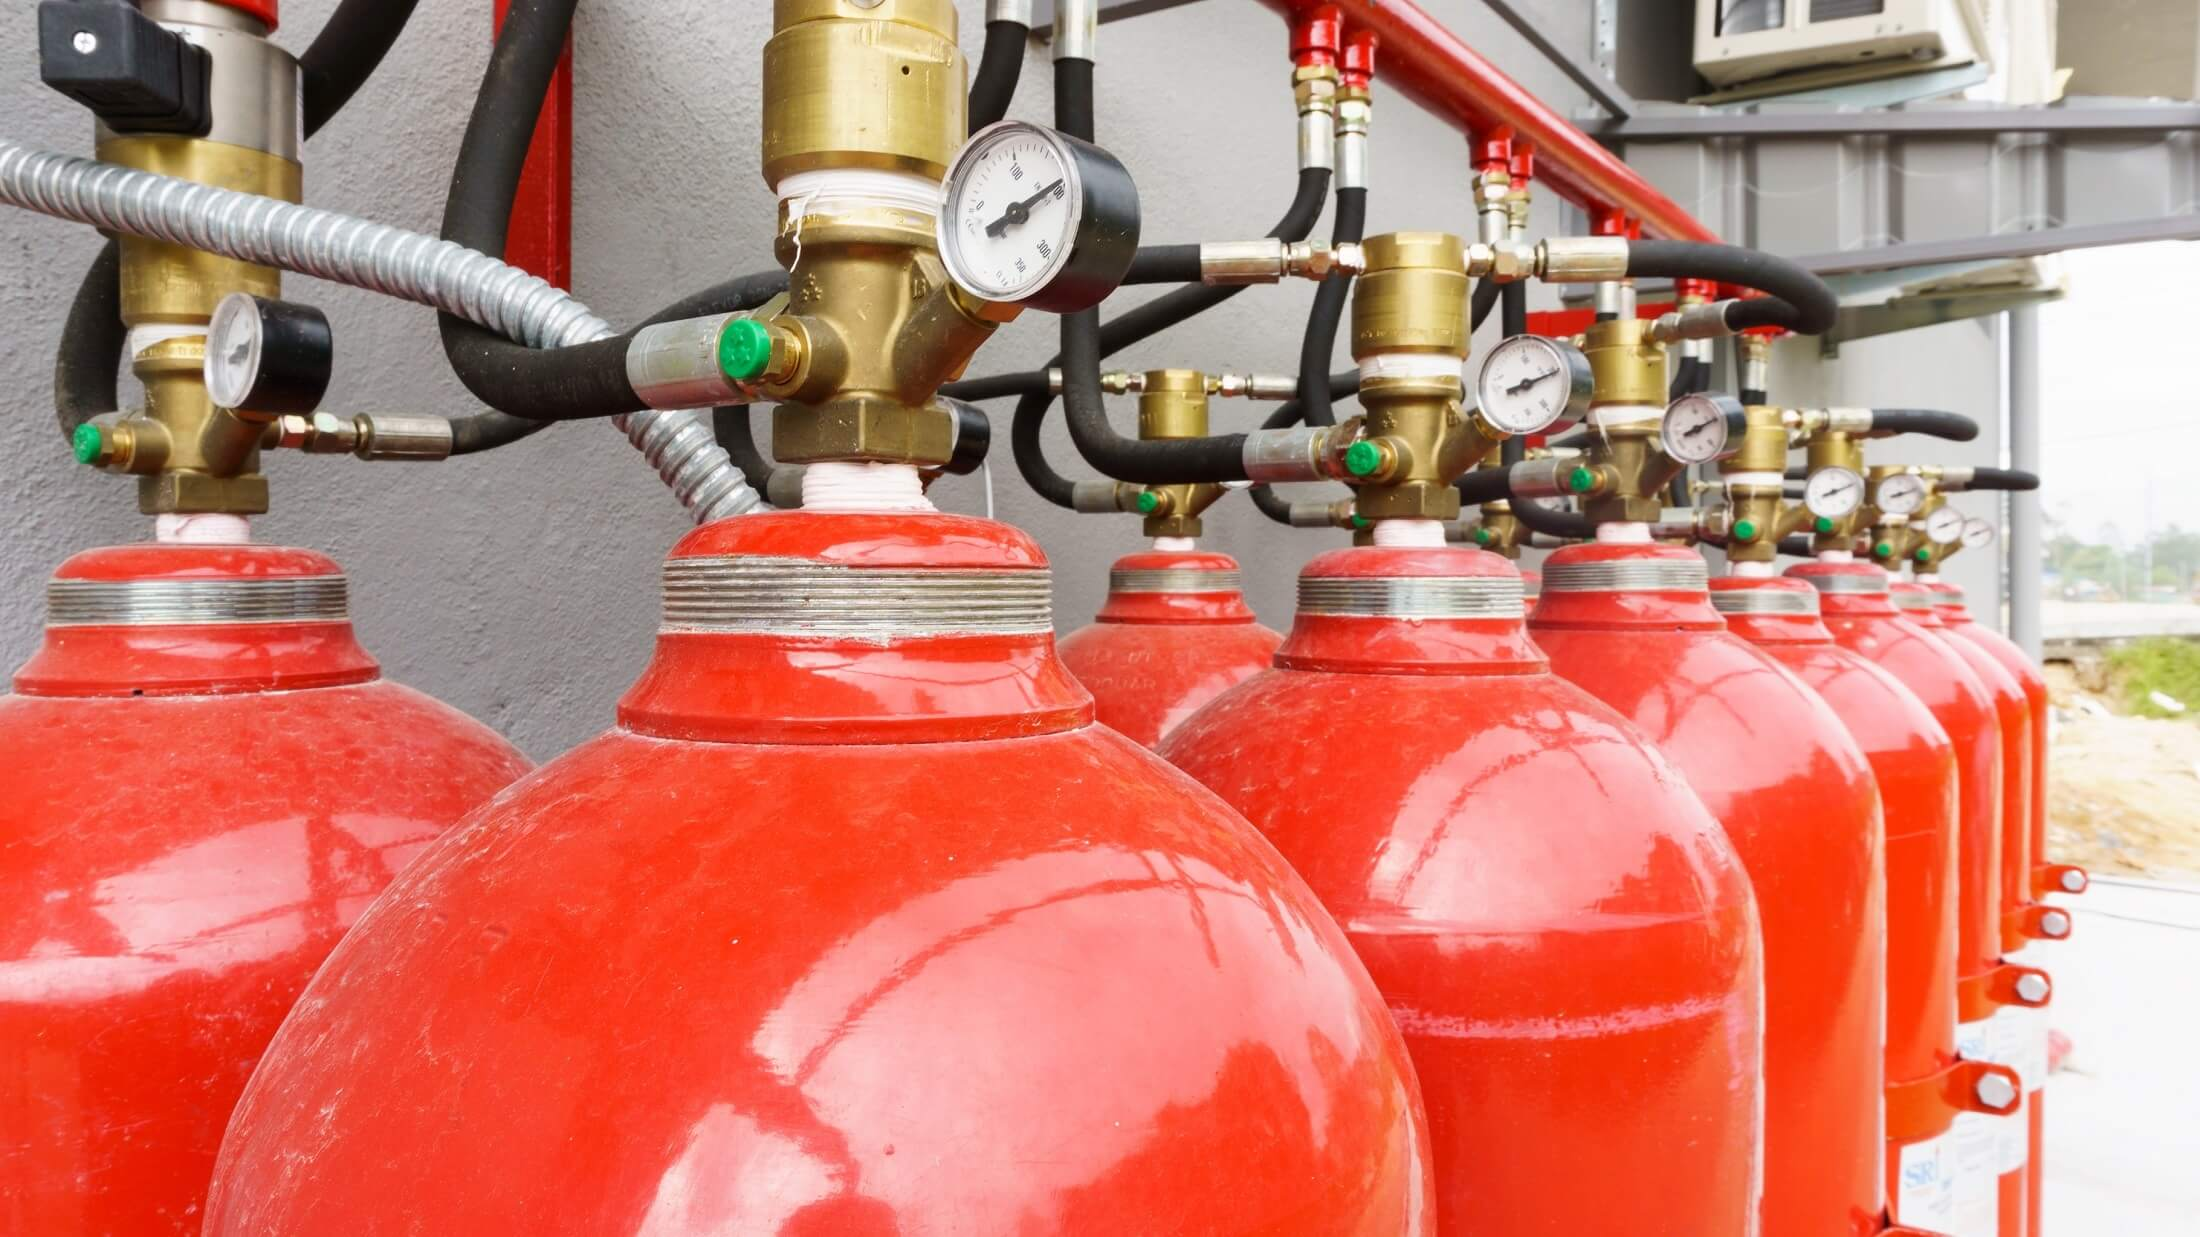 Why do acetylene cylinders need to be stored upright